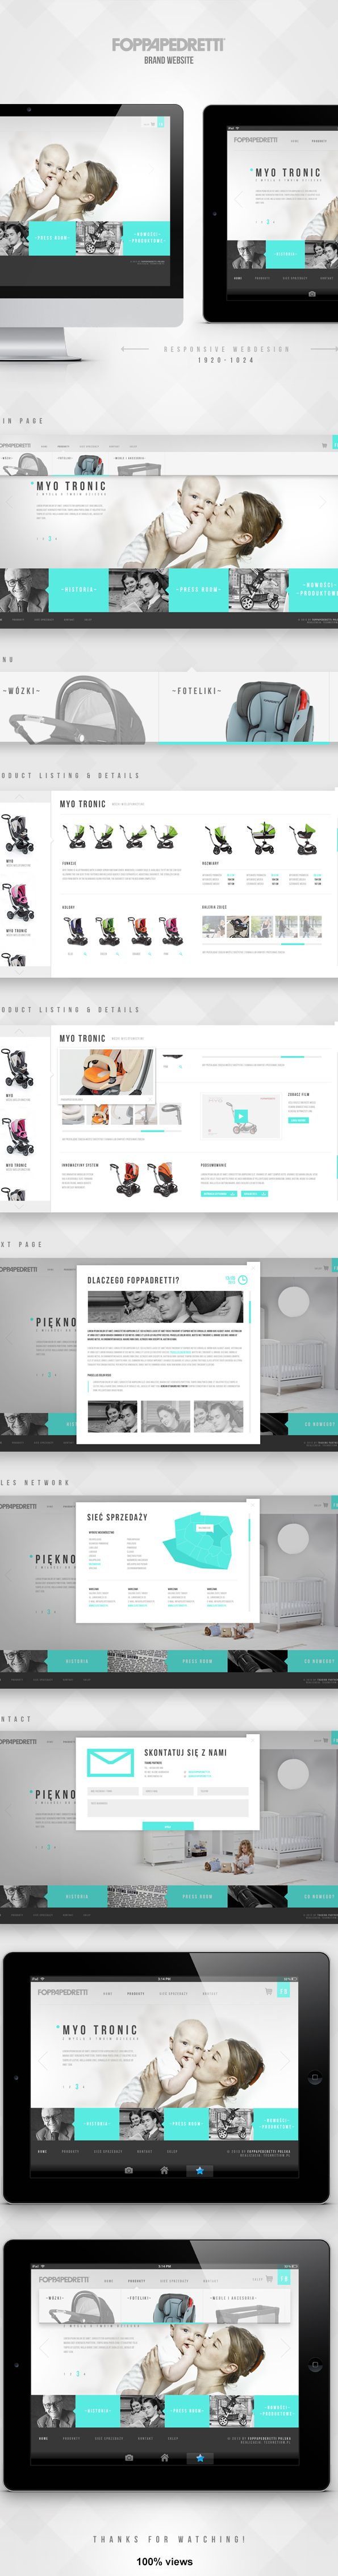 Foppapedretti - Store For Baby by Paweł Śliwa, via Behance #ecommerce